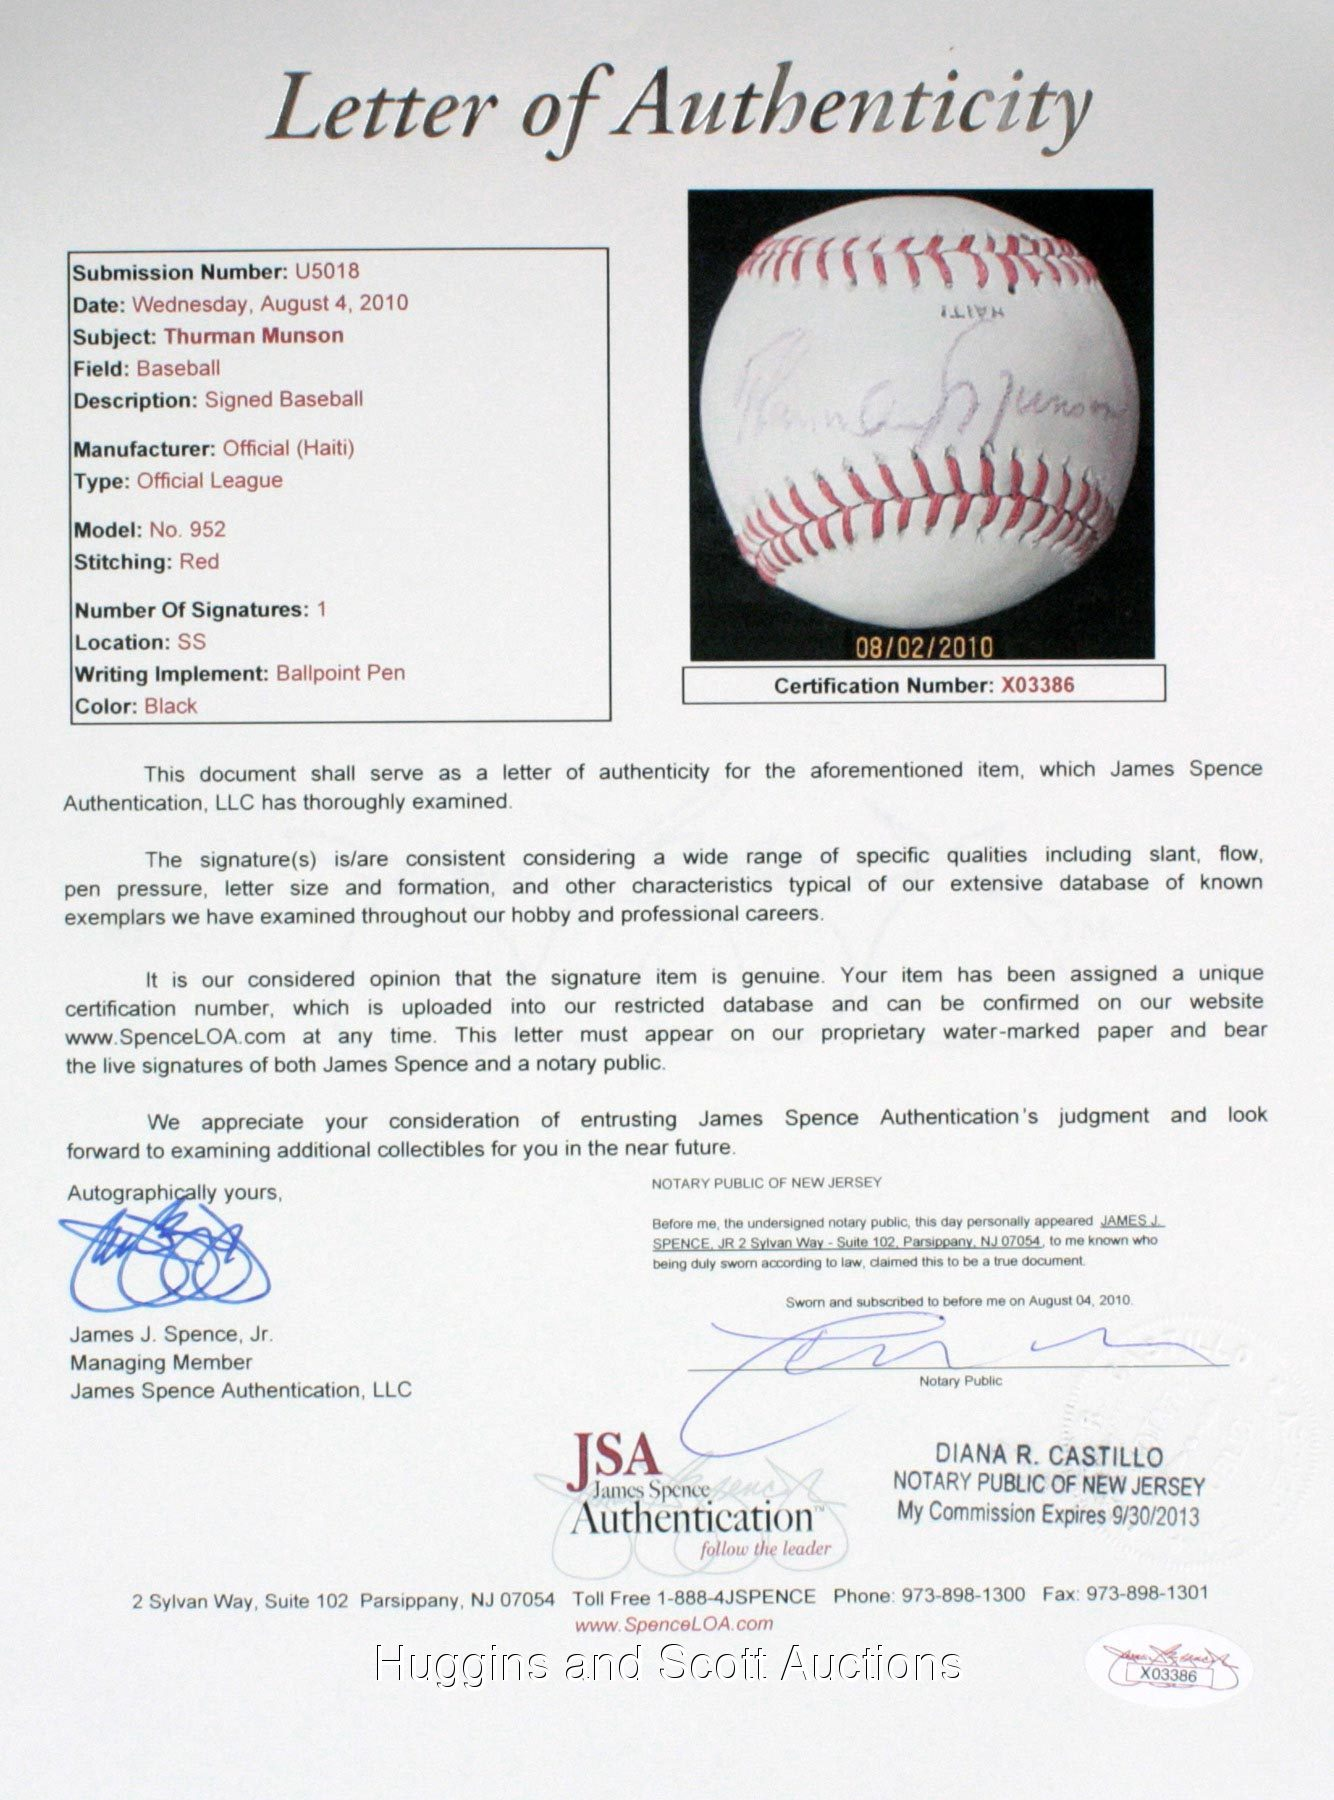 munson black singles Find great deals on ebay for thurman munson autograph in rare bicentennial year 1976 thurman munson single signed baseball baseball was signed blue and black.